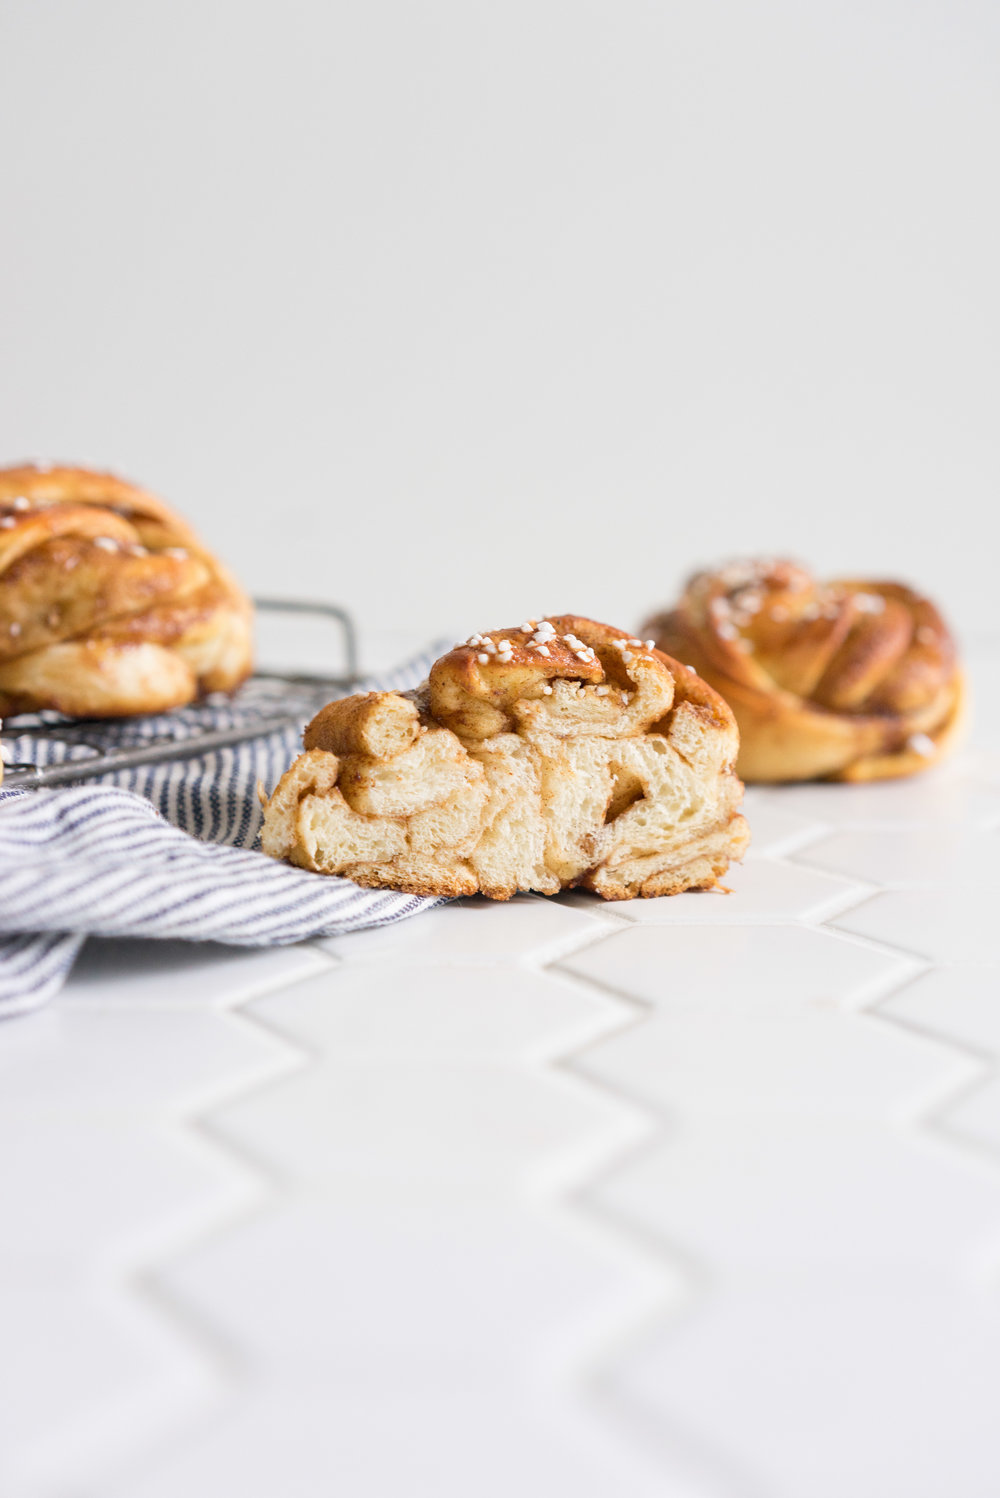 Swedish Cinnamon rolls - cardamom spiced dough filled with a perfectly spiced filling